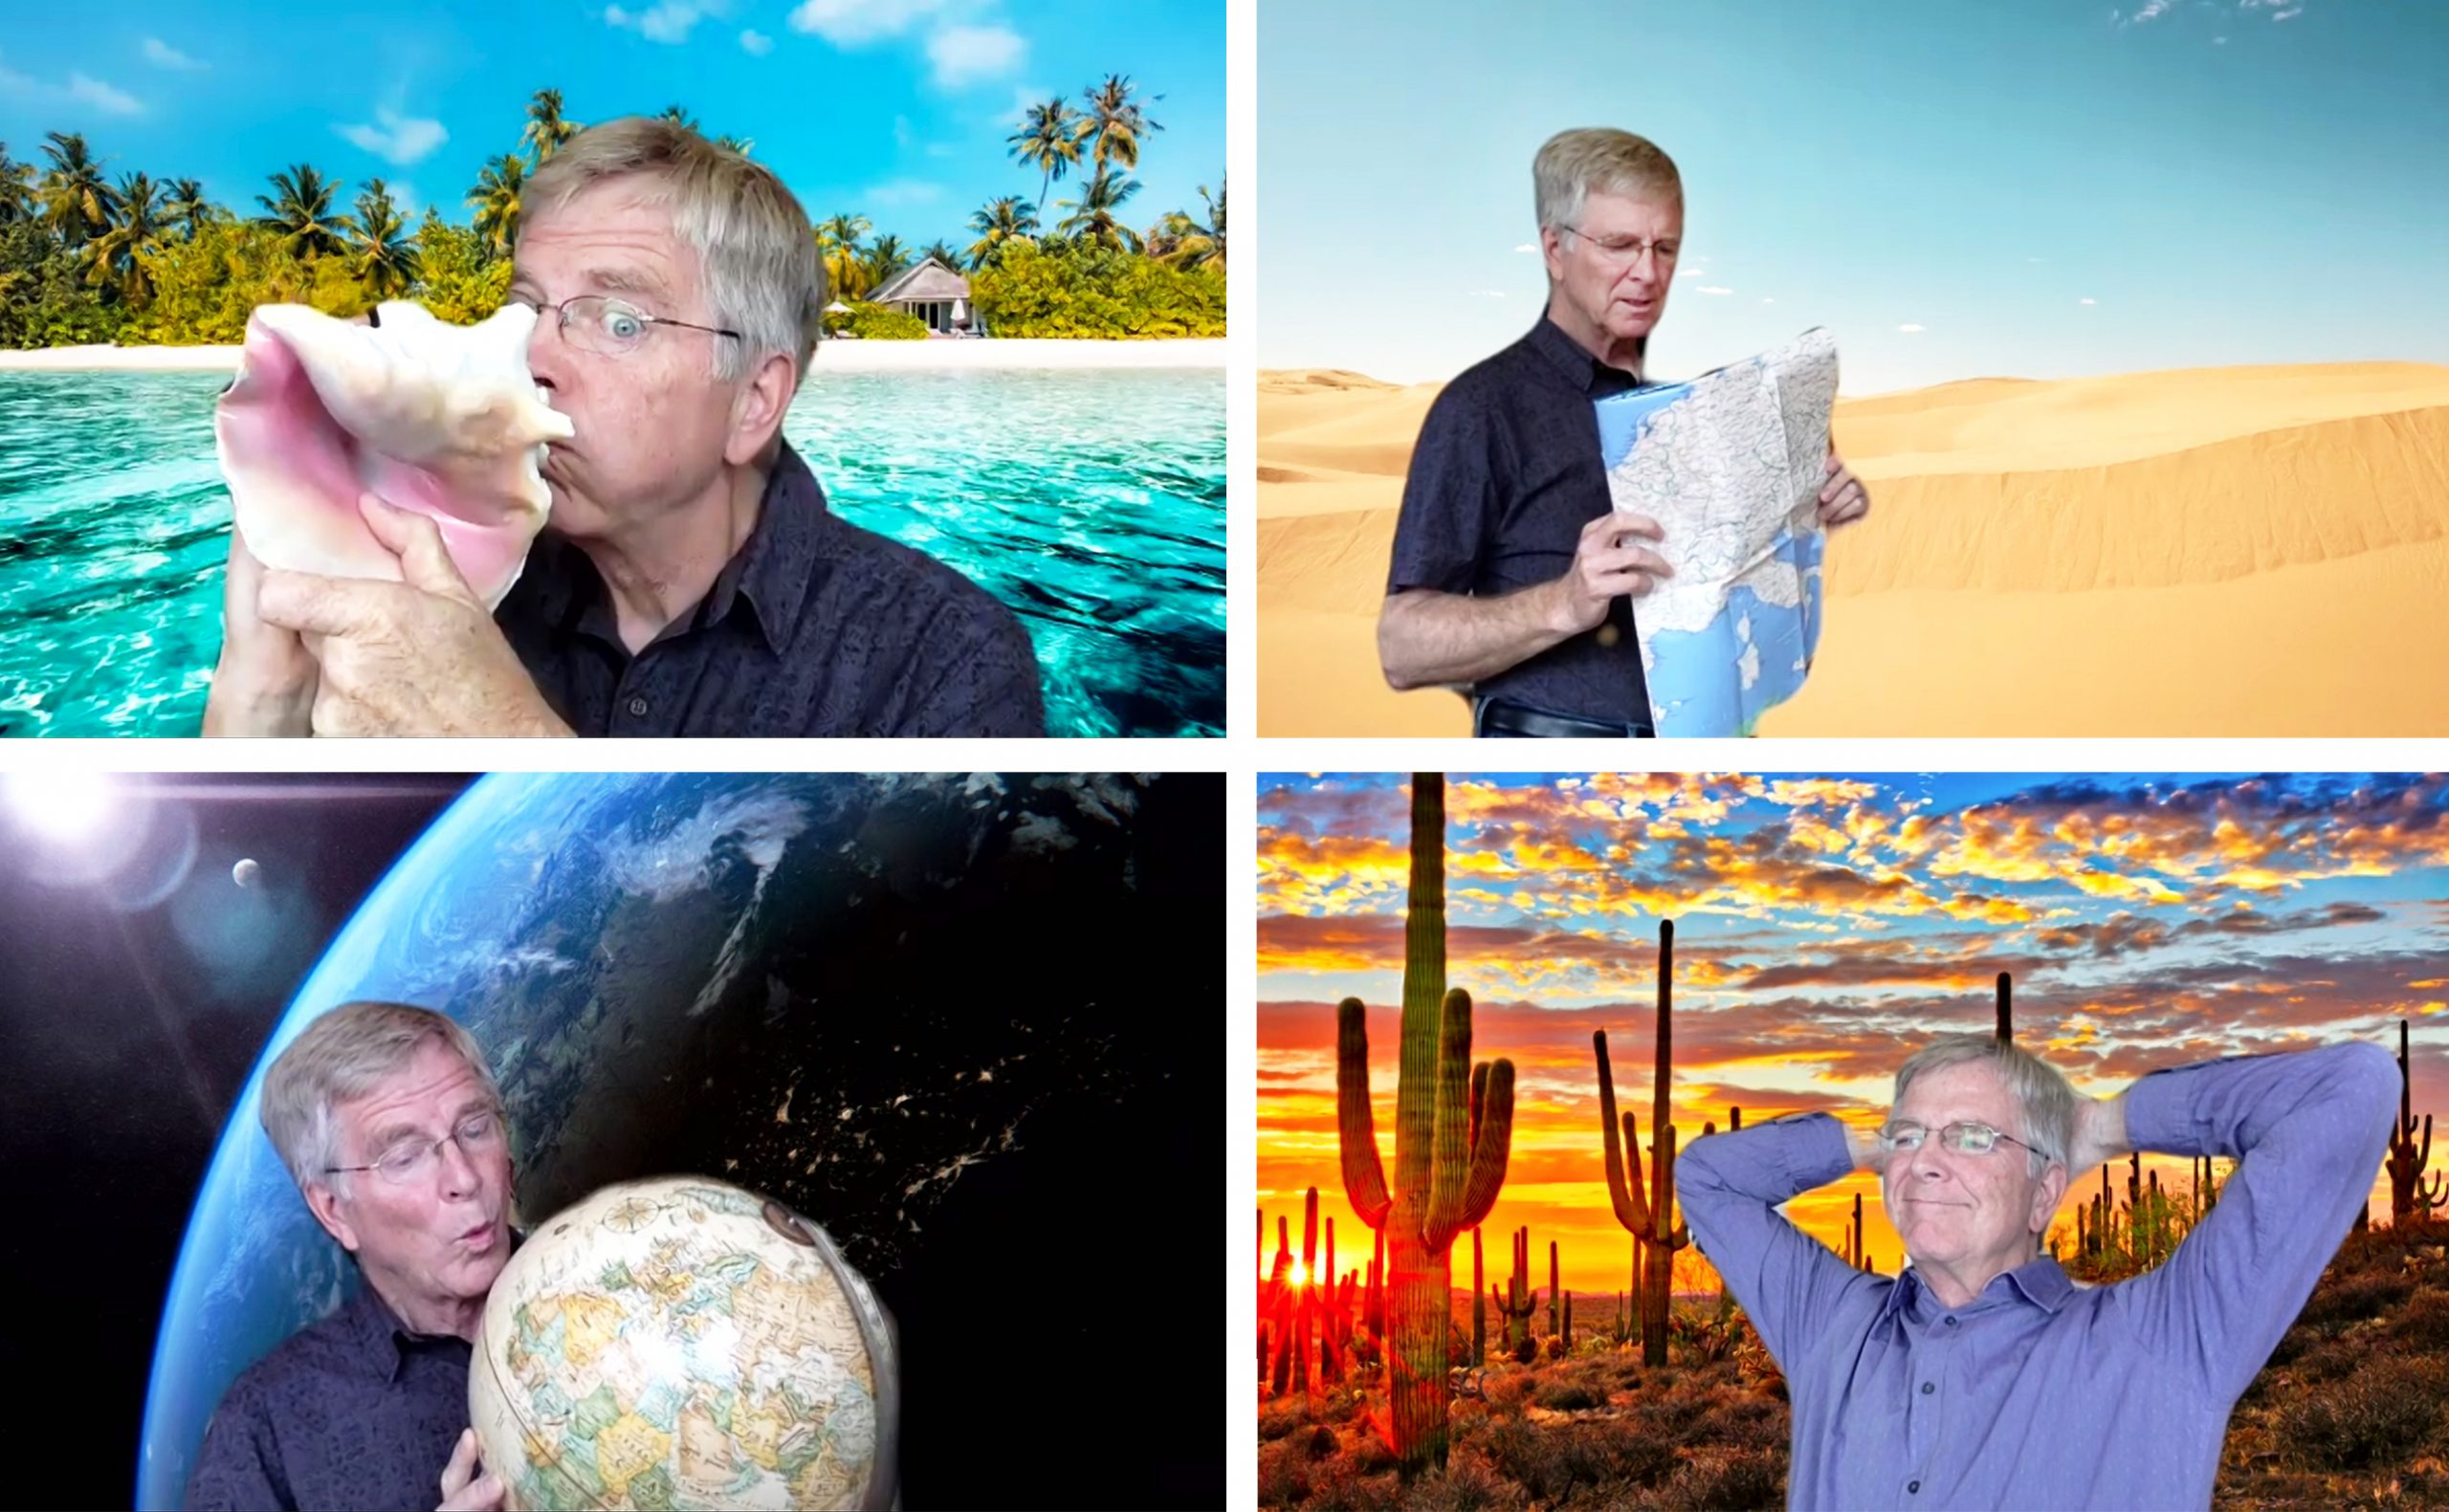 America Travel guru Rick Steves speaks to stay in one place what America gets wrong, and the dream of Escargots